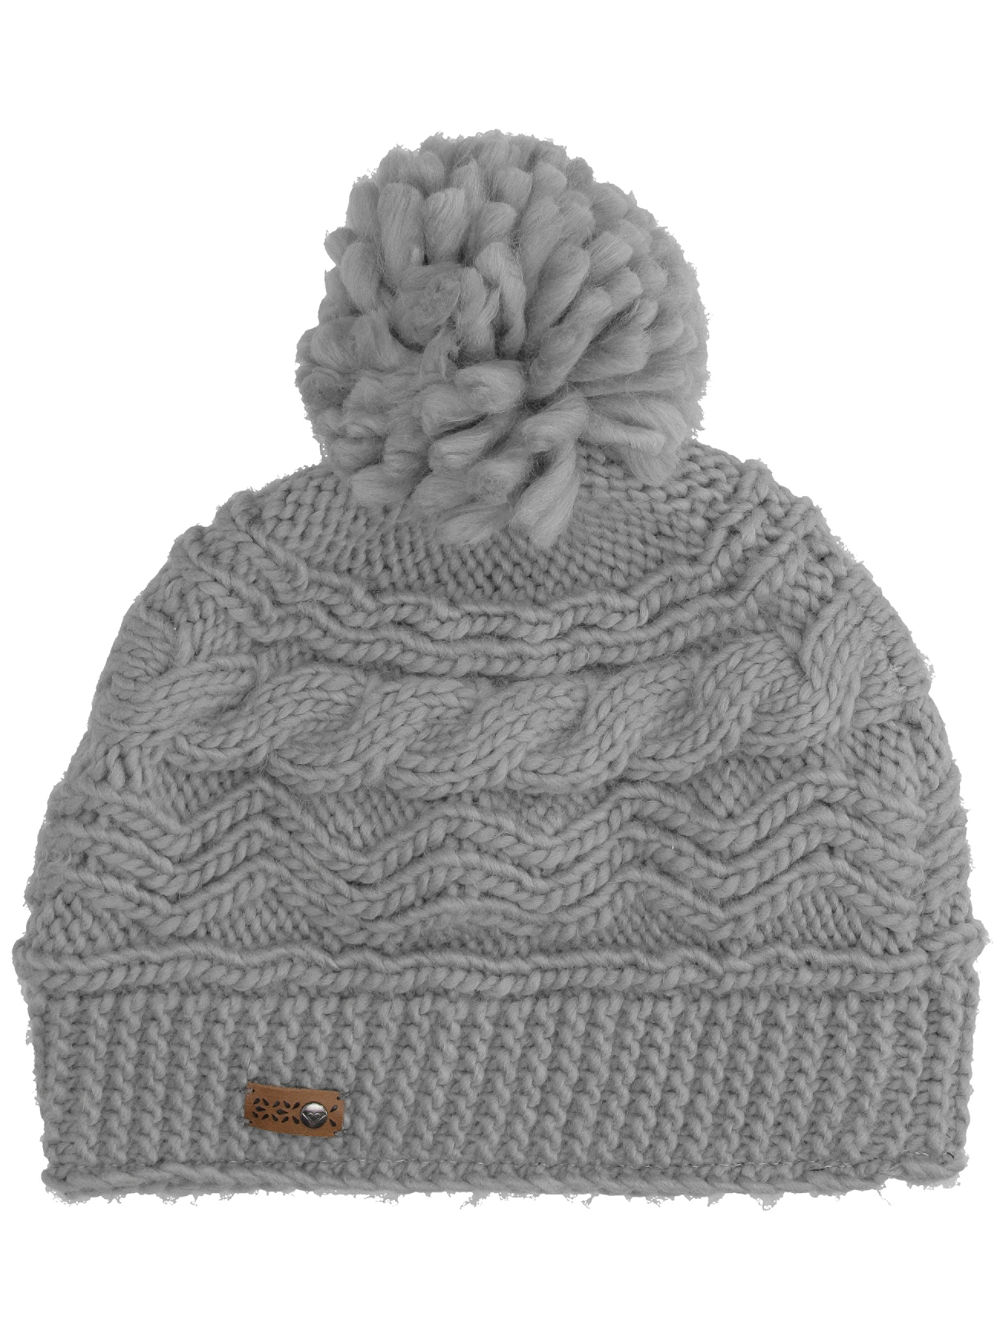 Buy Roxy Winter Beanie online at blue-tomato.com 4d3217bbb7f